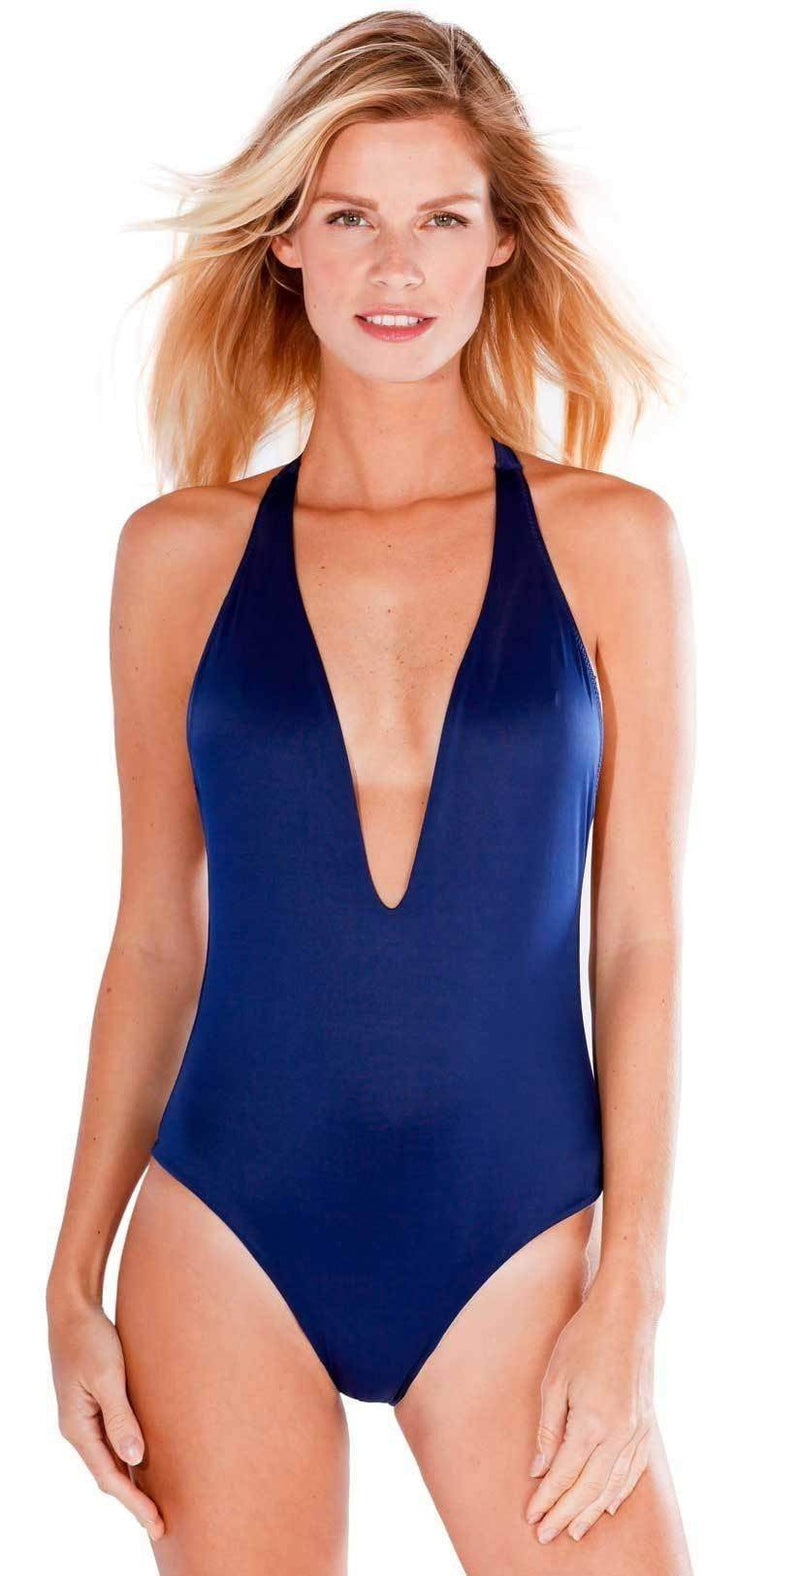 Peixoto Flamingo Latin One Piece in Navy Blue 1302L-S41: